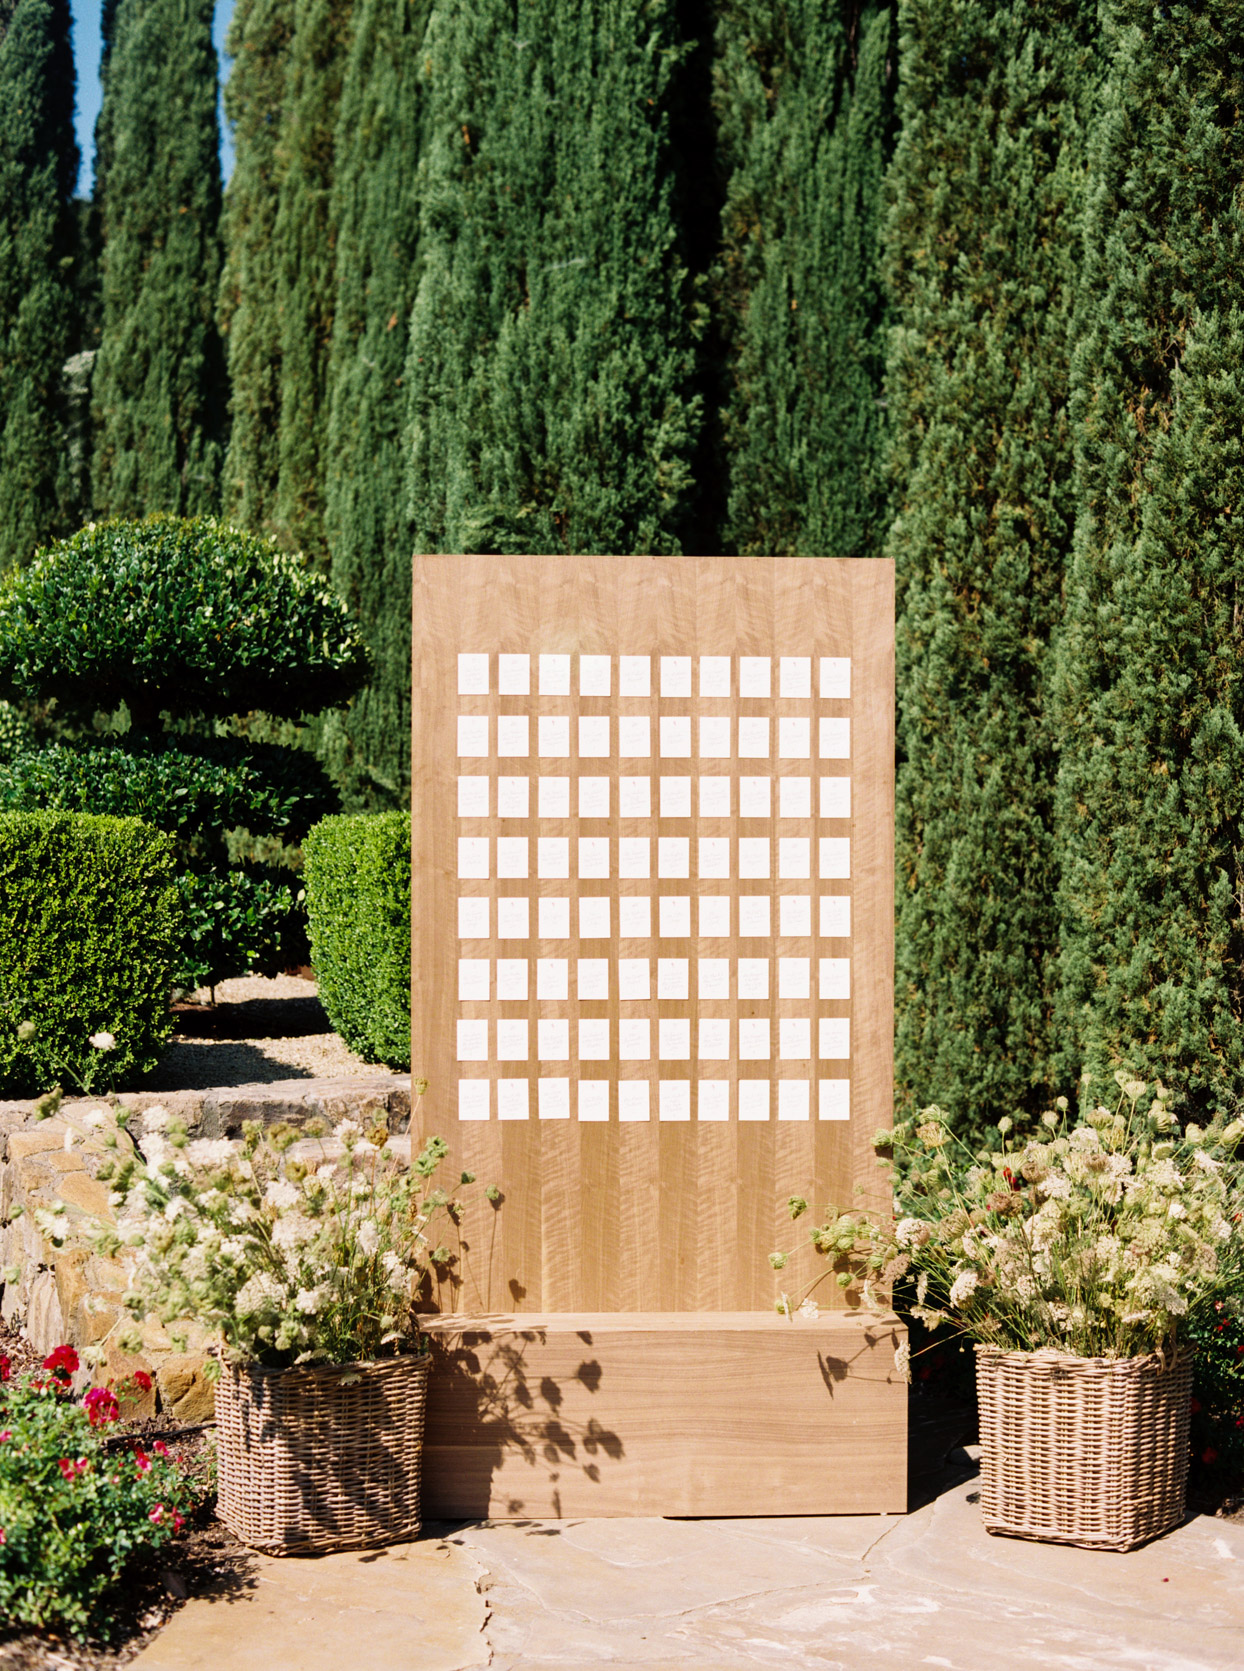 simple wooden board with escort cards in front of hedges